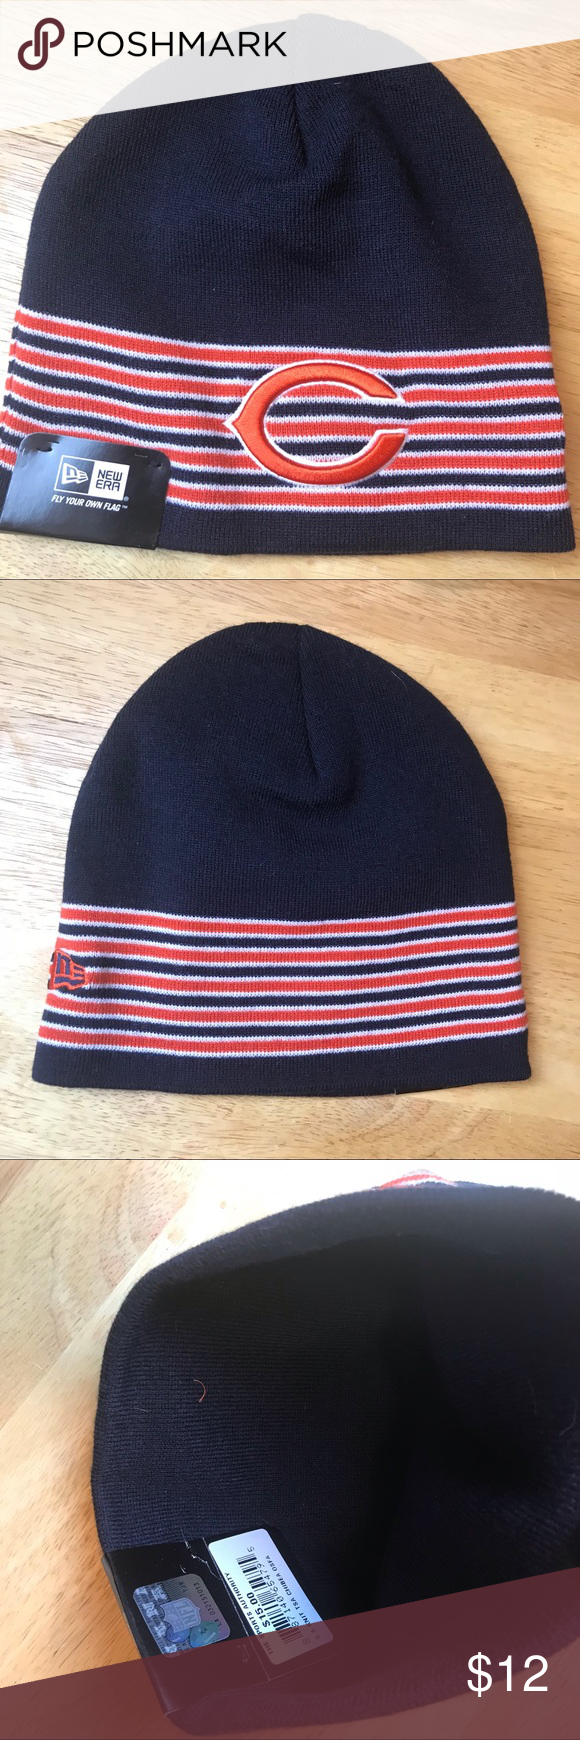 Chicago Bears Knot Hat Beanie Toboggan Nwt Os Nwt In 2018 My Posh